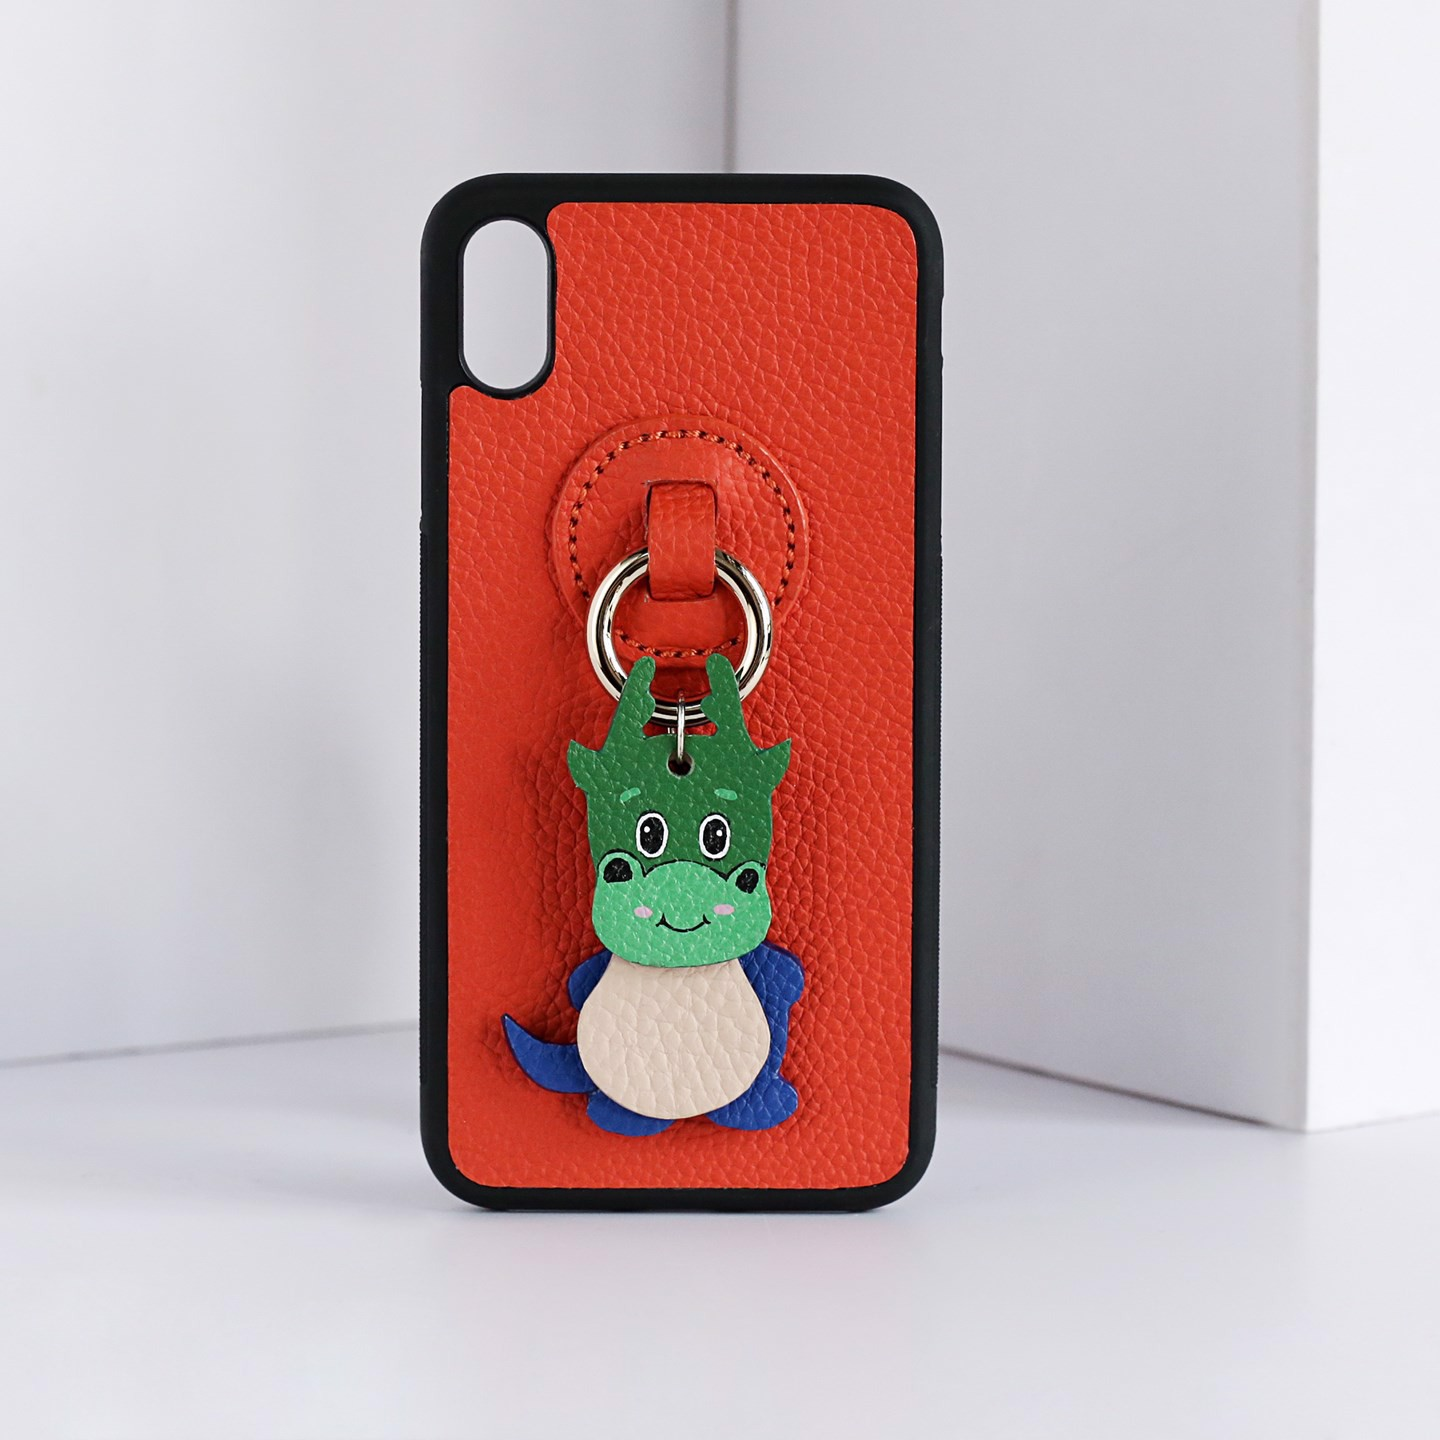 Case iPhone XS Max C81-PK13 Thìn